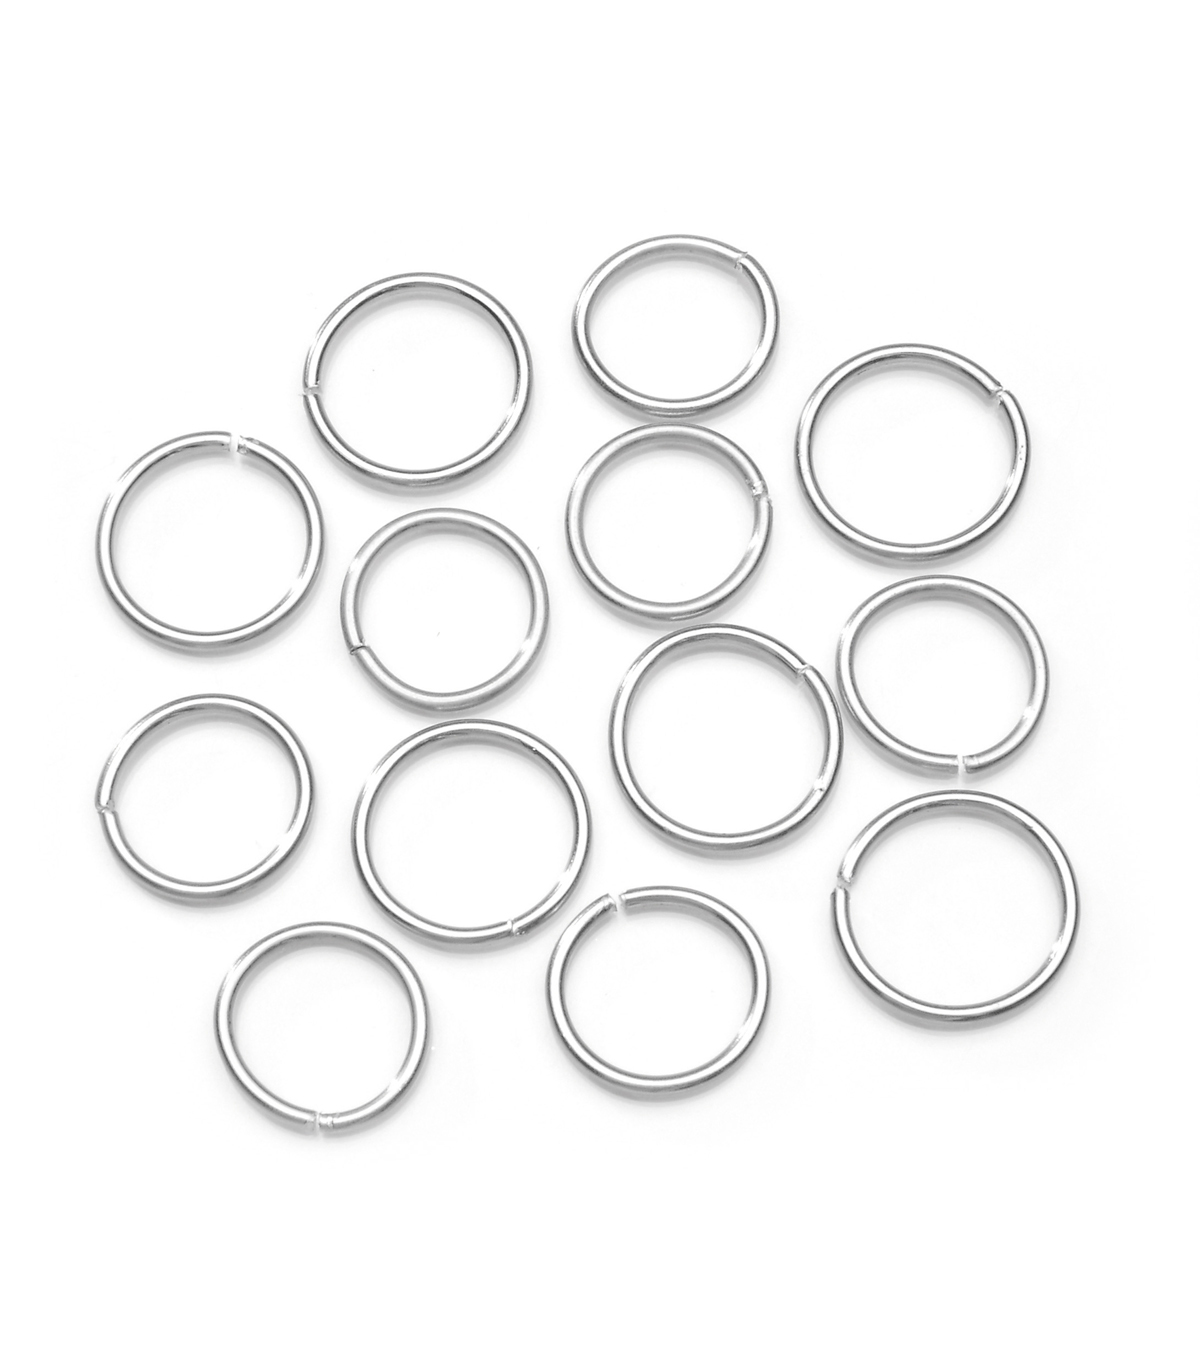 Assorted Size Aluminum Jump Rings, Round, Silver, 44pcs.